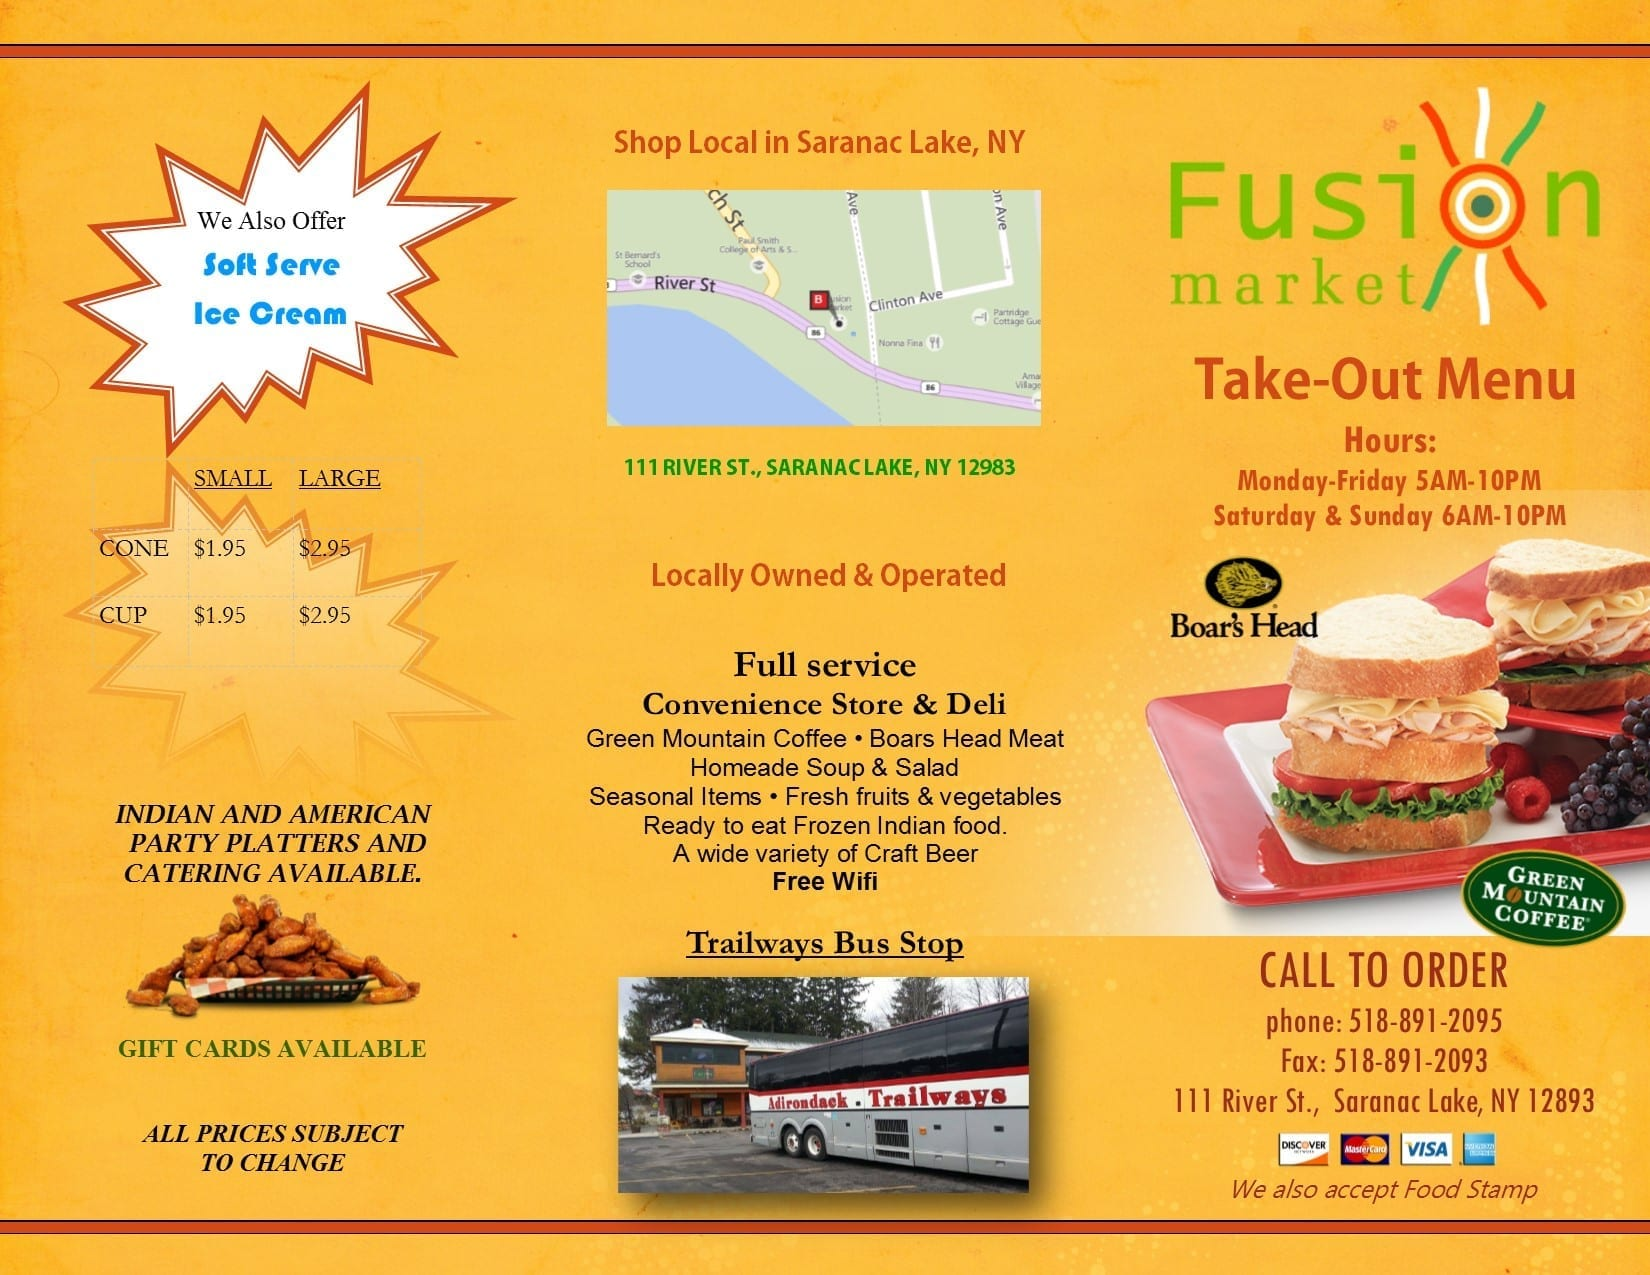 Fusion Market Deli Take-Out menu 2015_Saranac ake ny_front